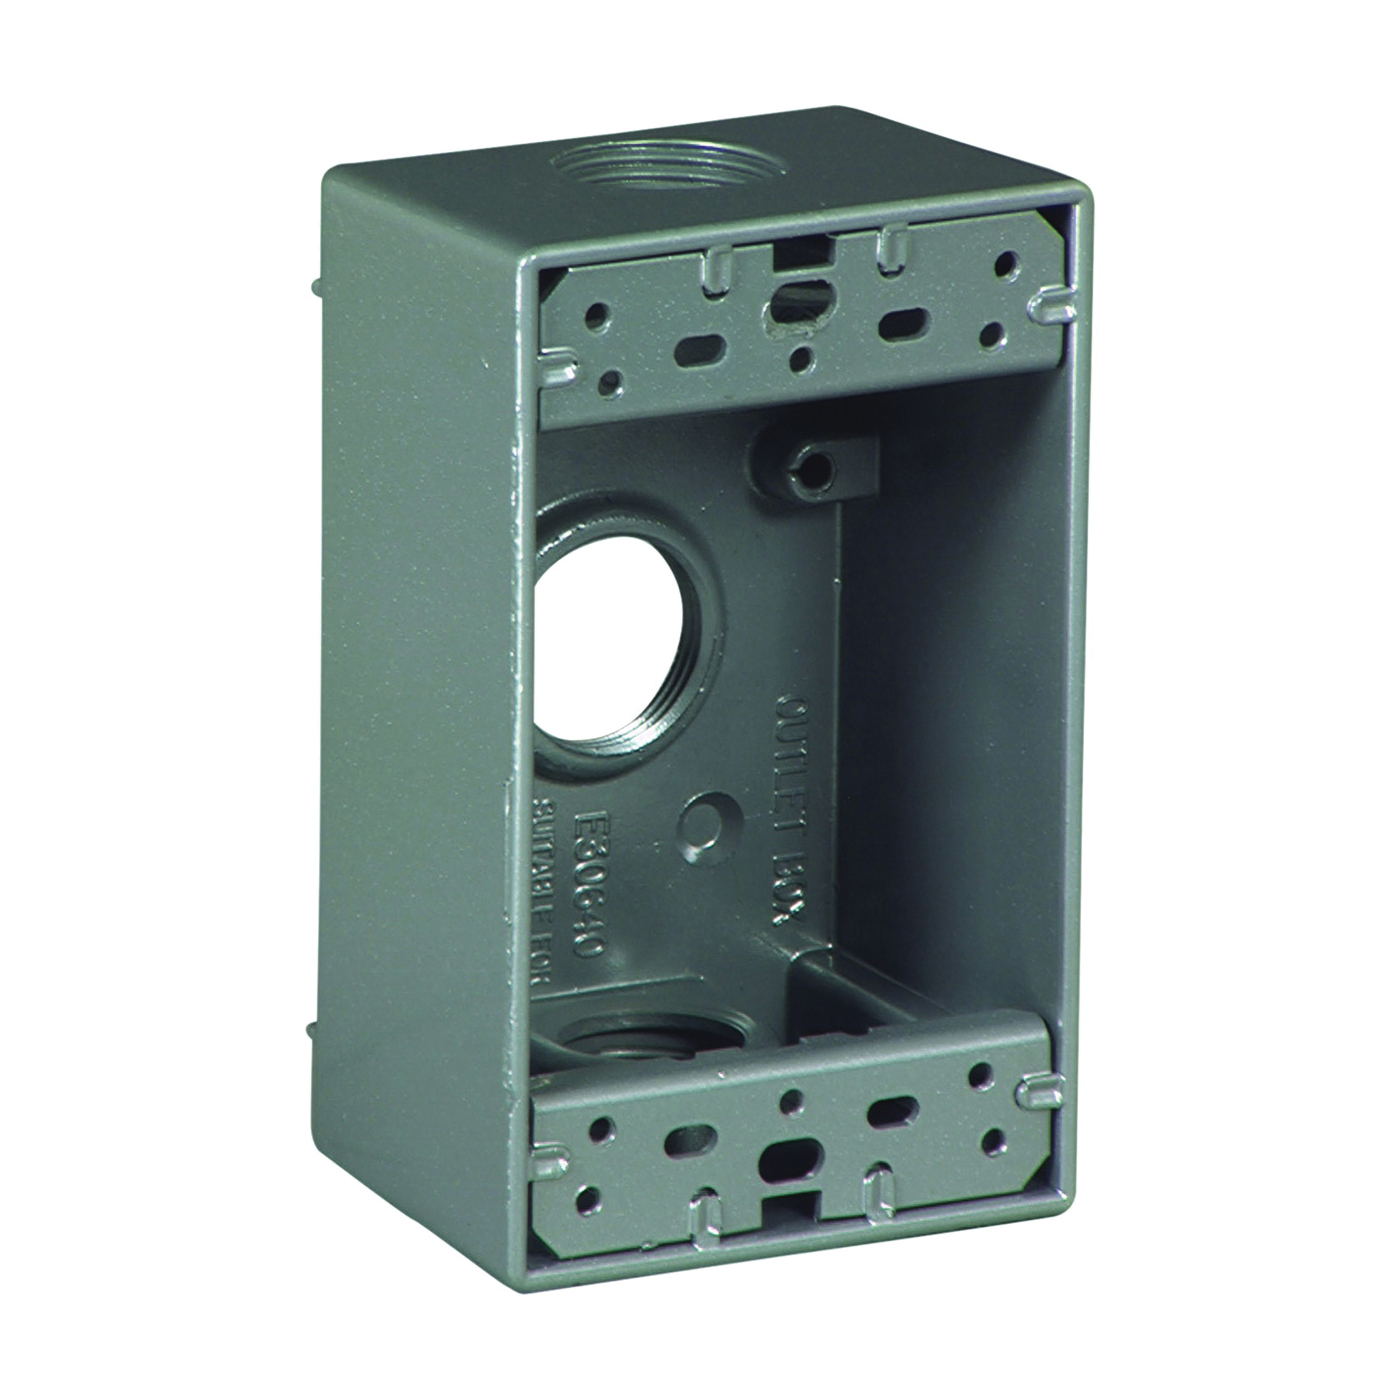 Picture of Eaton Wiring Devices 1116-SP Outlet Box, 3-Outlet, 1-Gang, Aluminum, Black, Powder-Coated, Wall Mounting